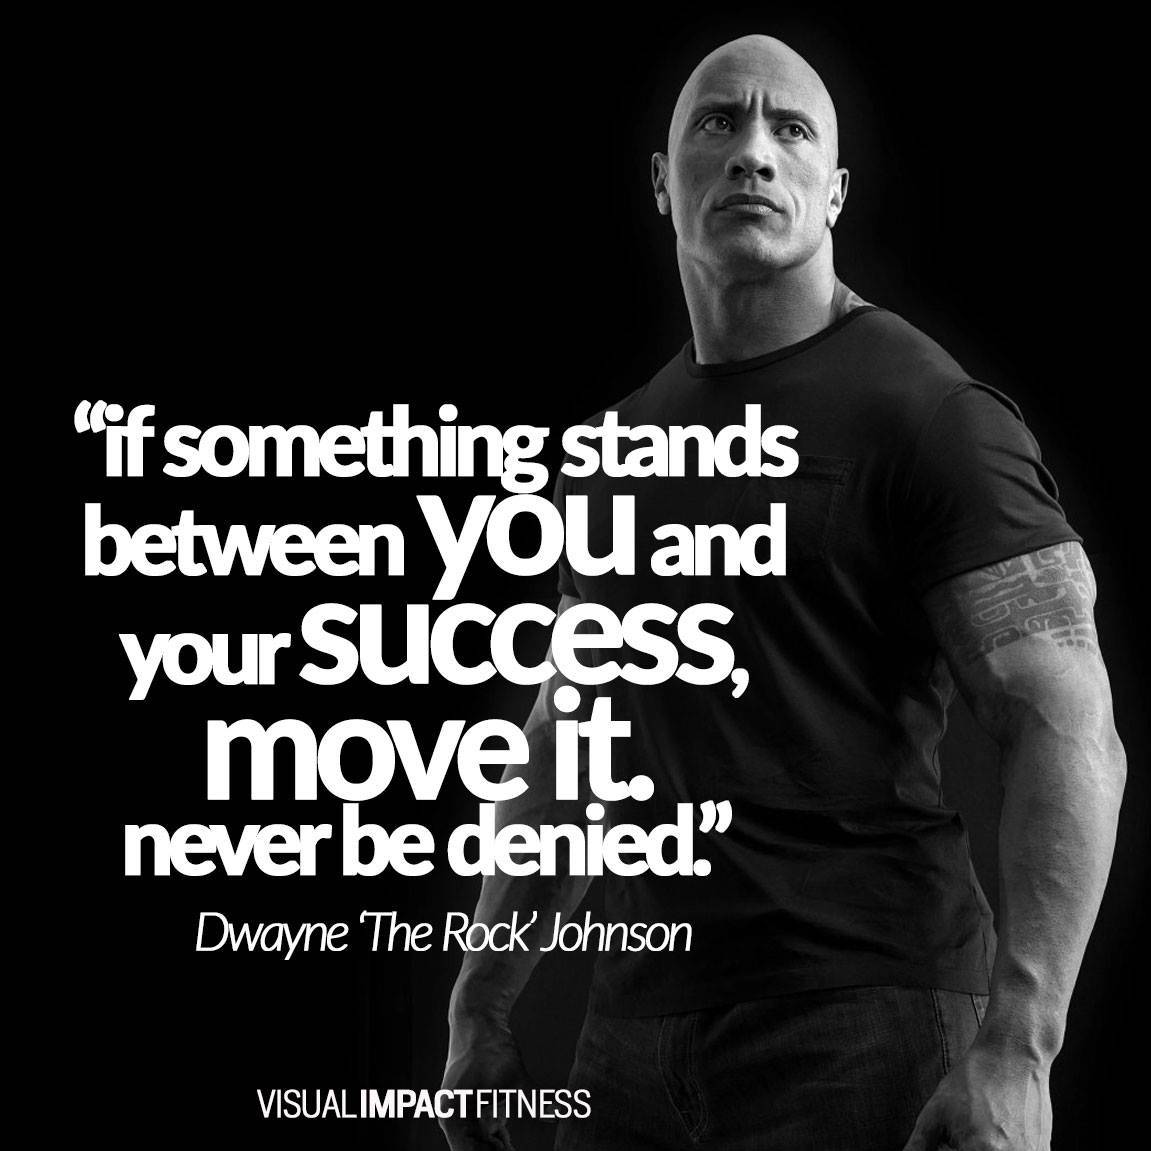 If something stands between you and your success, move it. Never be denied.